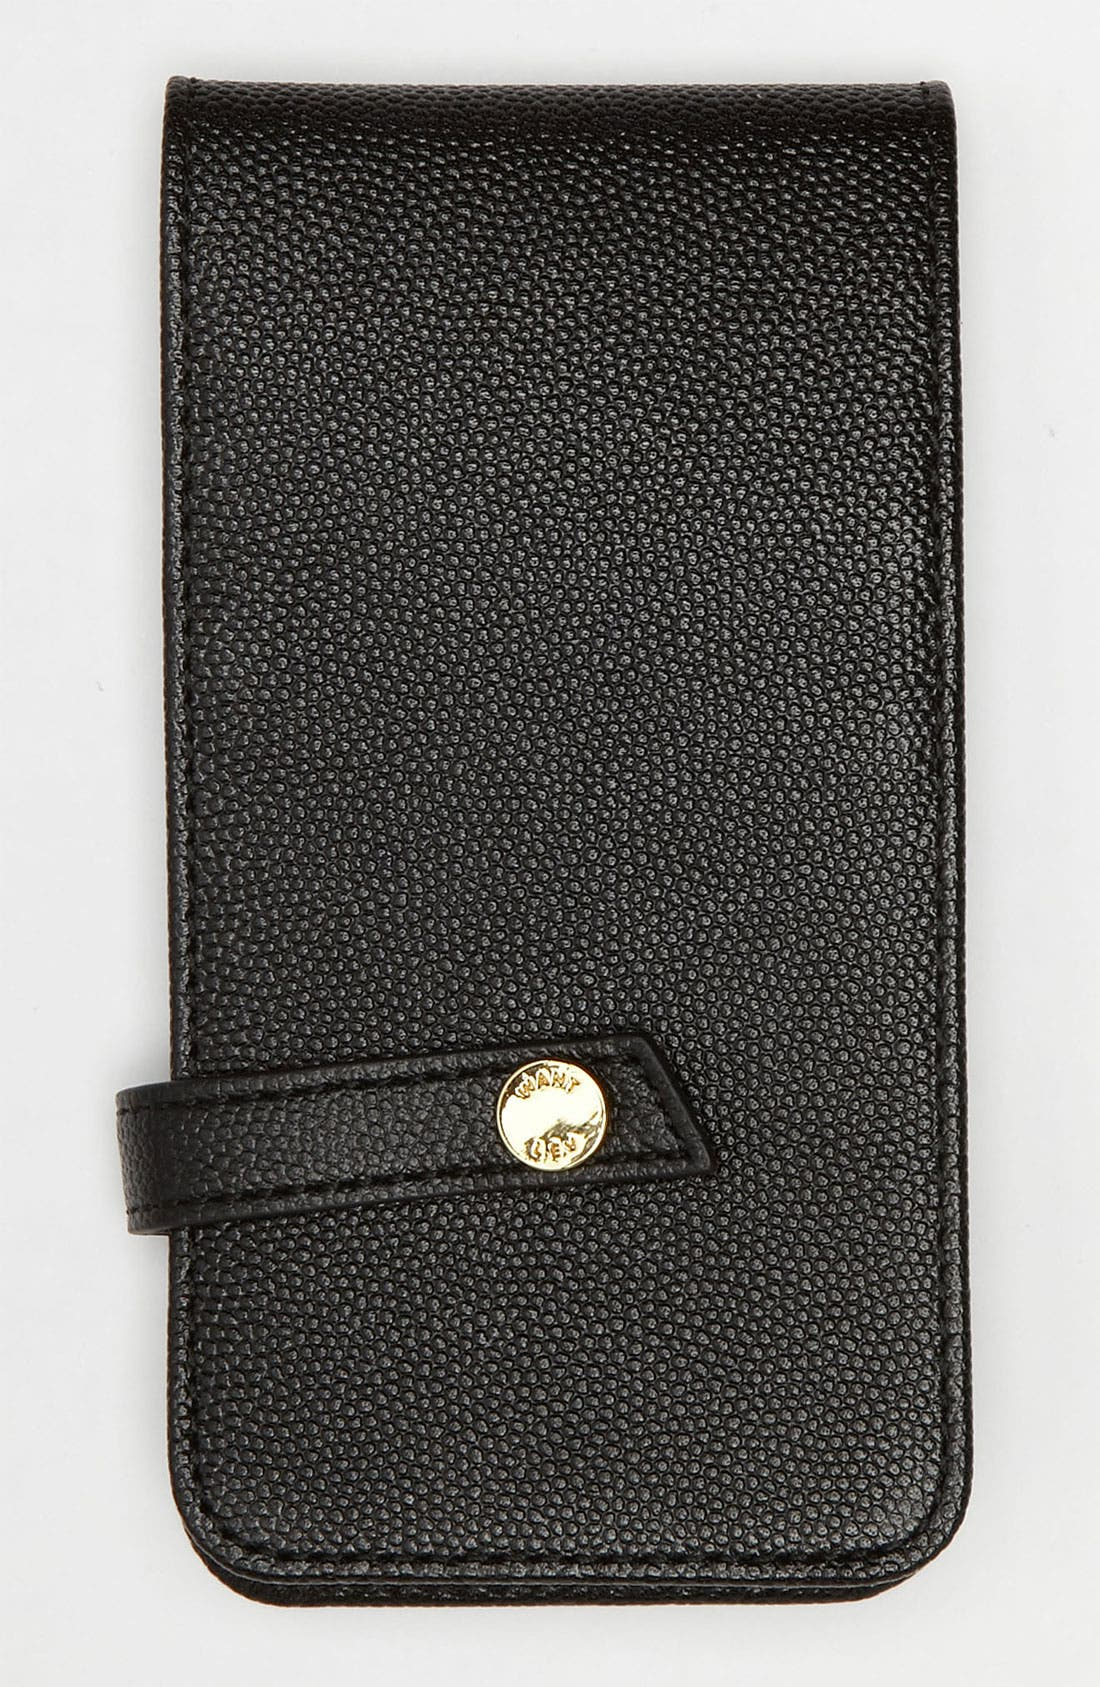 Main Image - WANT Les Essentiels de la Vie 'Newberry' iPhone 4 Case